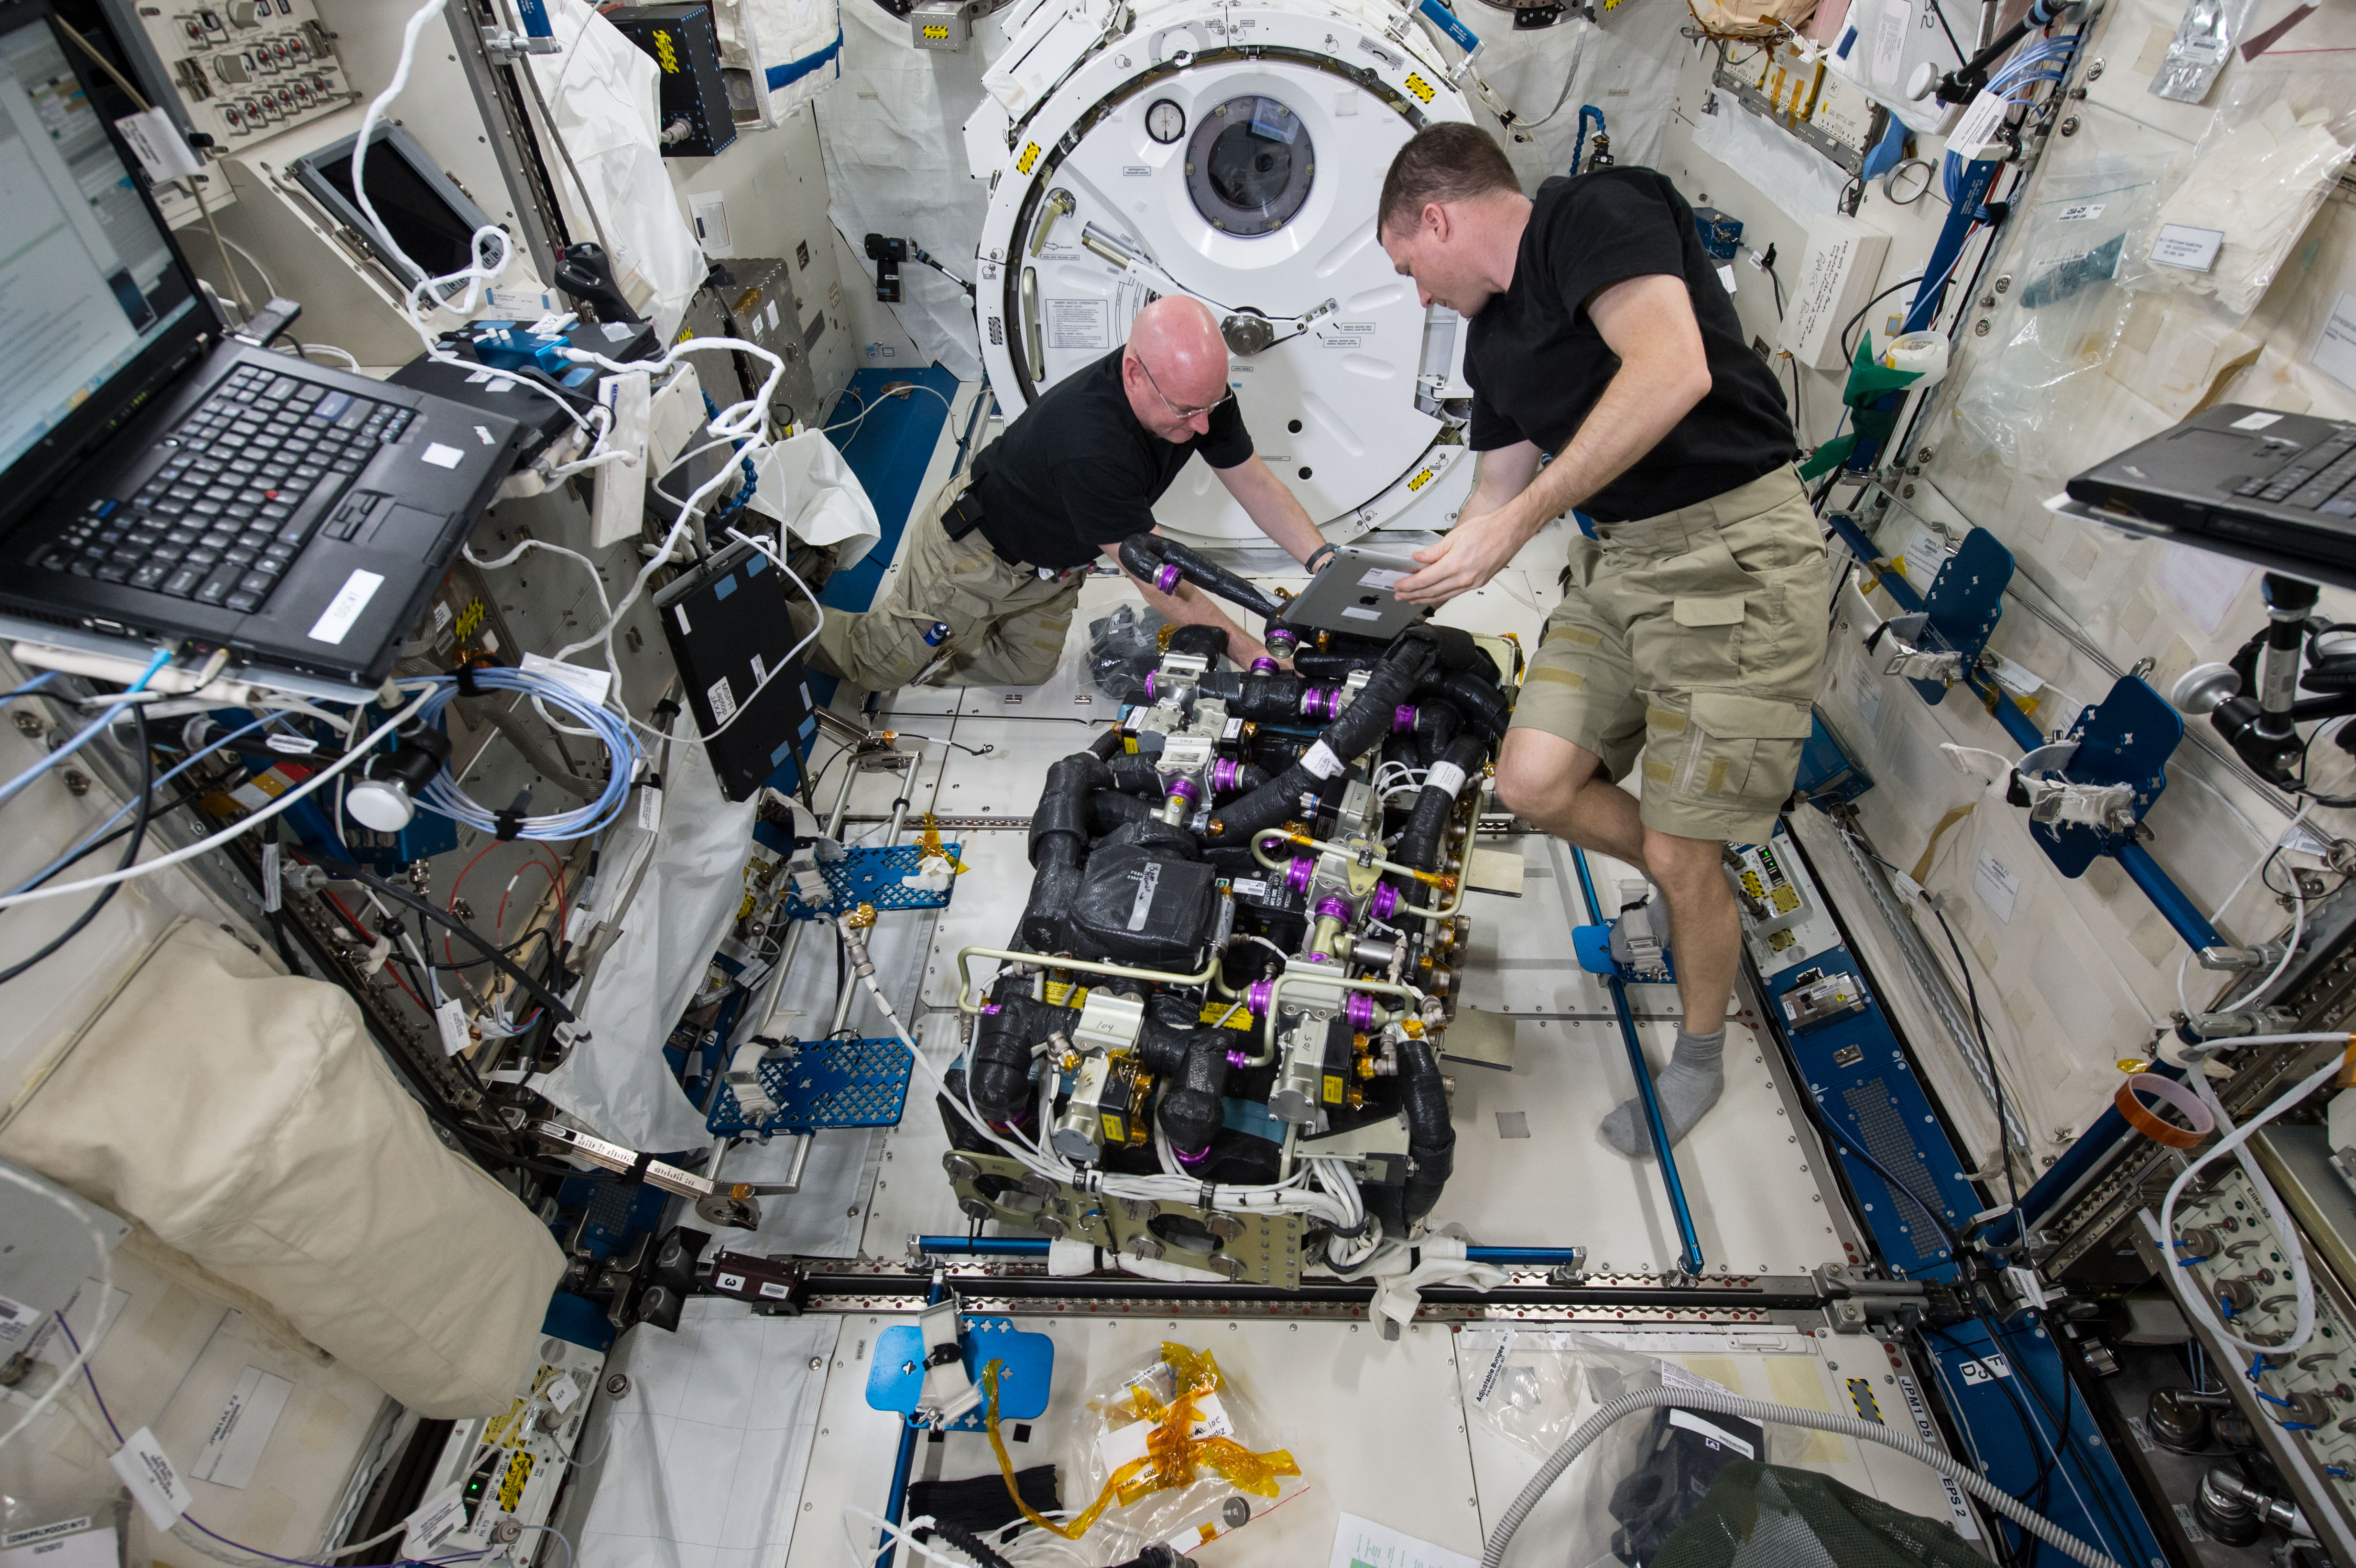 NASA image: Astronauts at work on the International Space ...